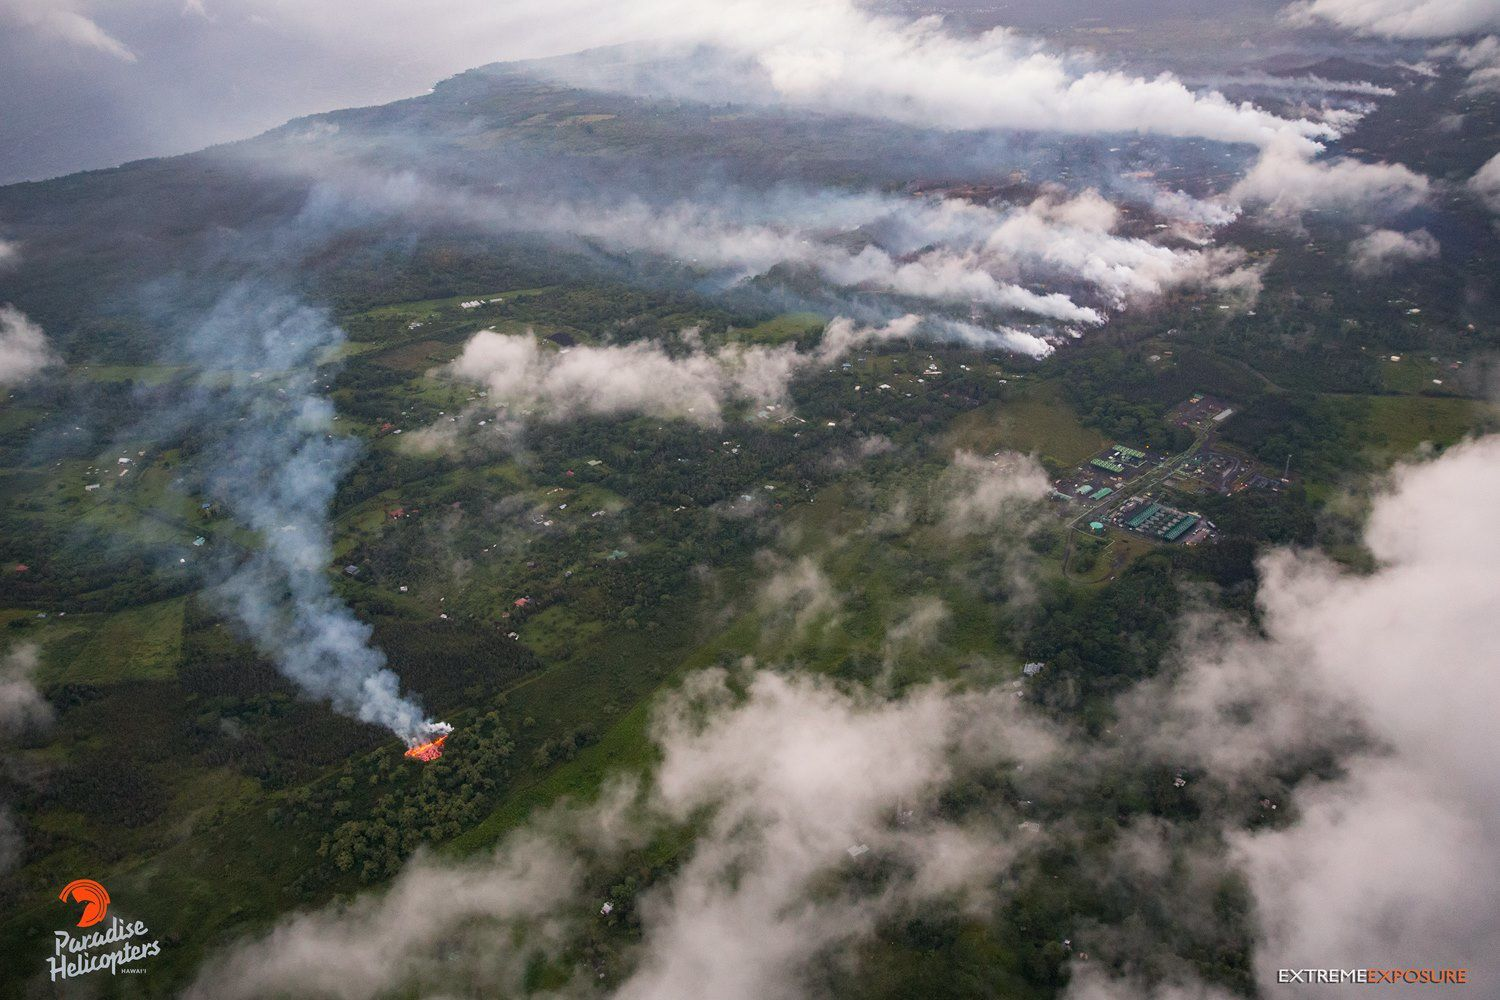 Kilauea - East Rift Zone - fissure  # 16 Active in Lalipuna Gardens and Degas Cracks in Leilani Estates - Photo by Bruce Omori / Paradise Helicopters